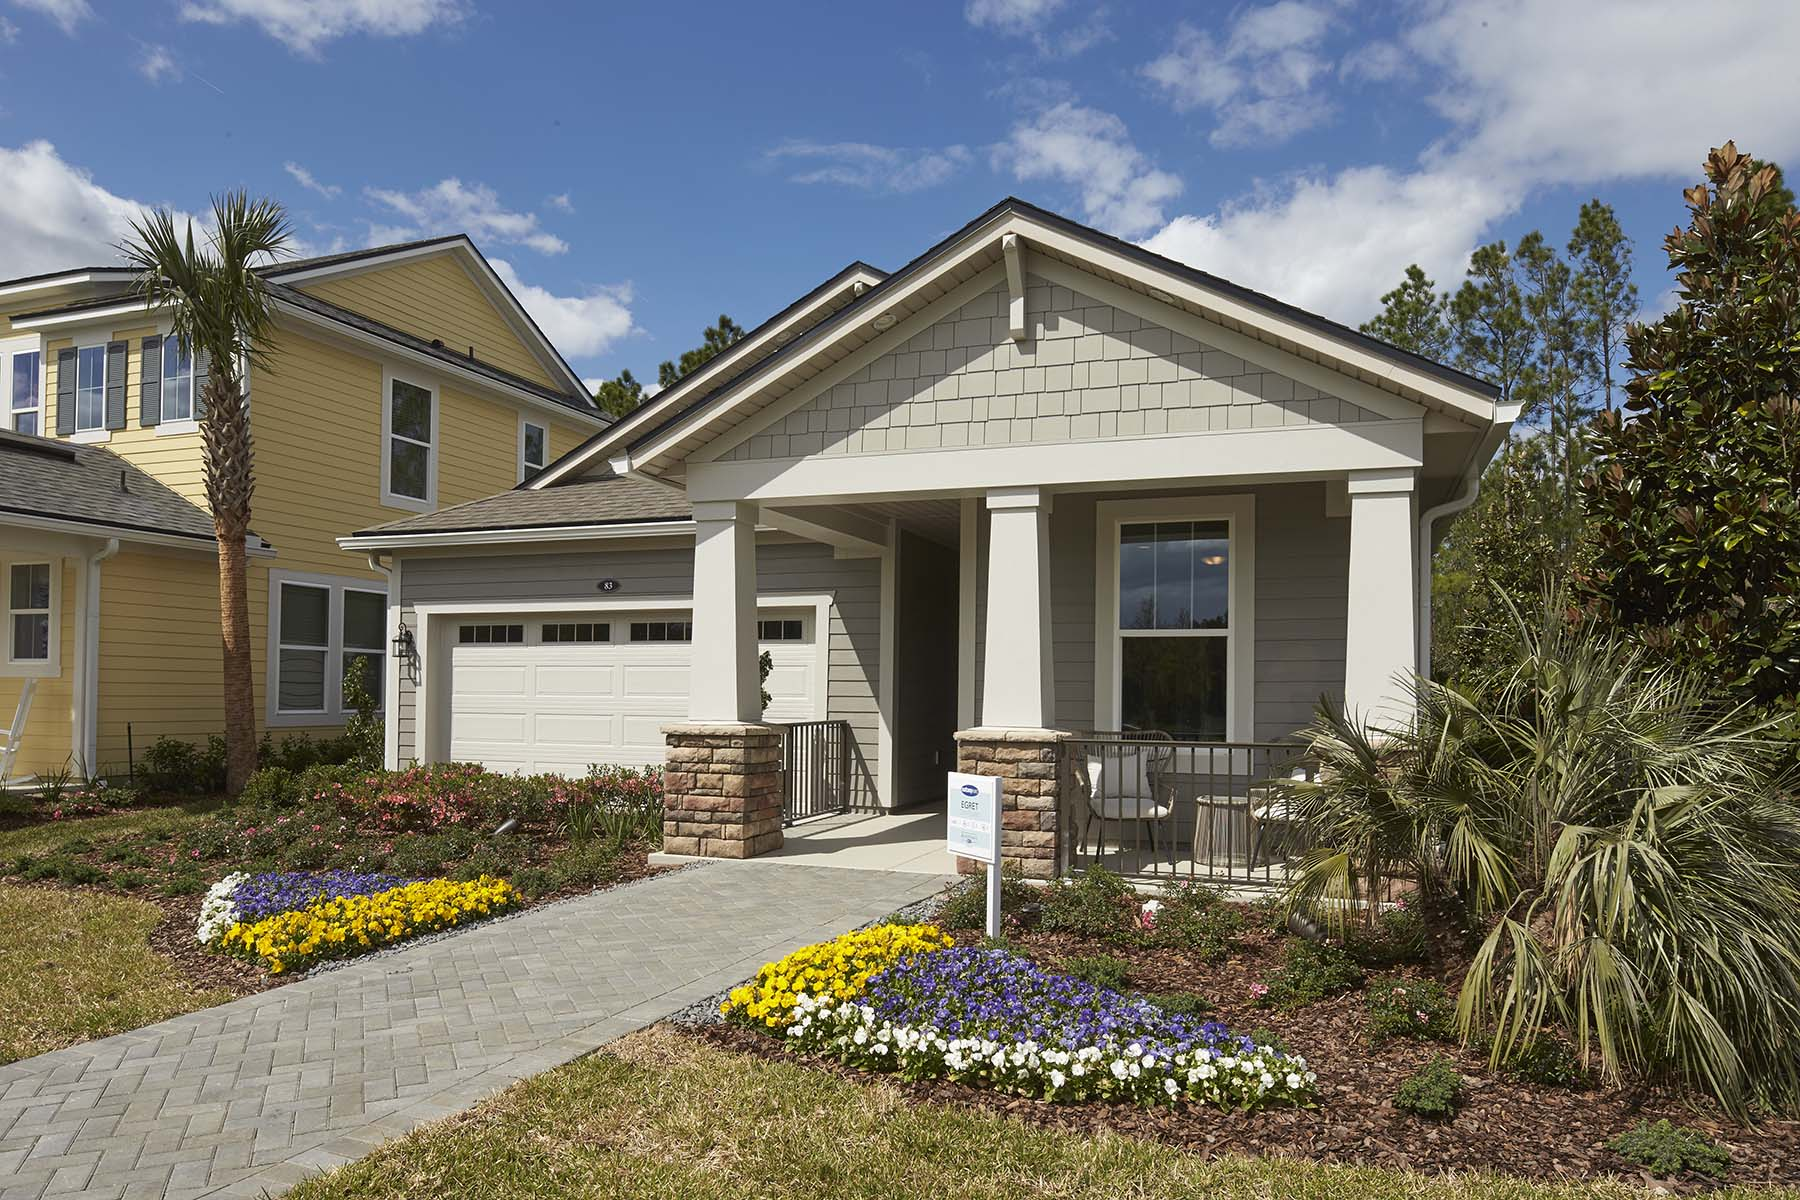 Egret Plan Front Porch at RiverTown - Arbors in St. Johns Florida by Mattamy Homes